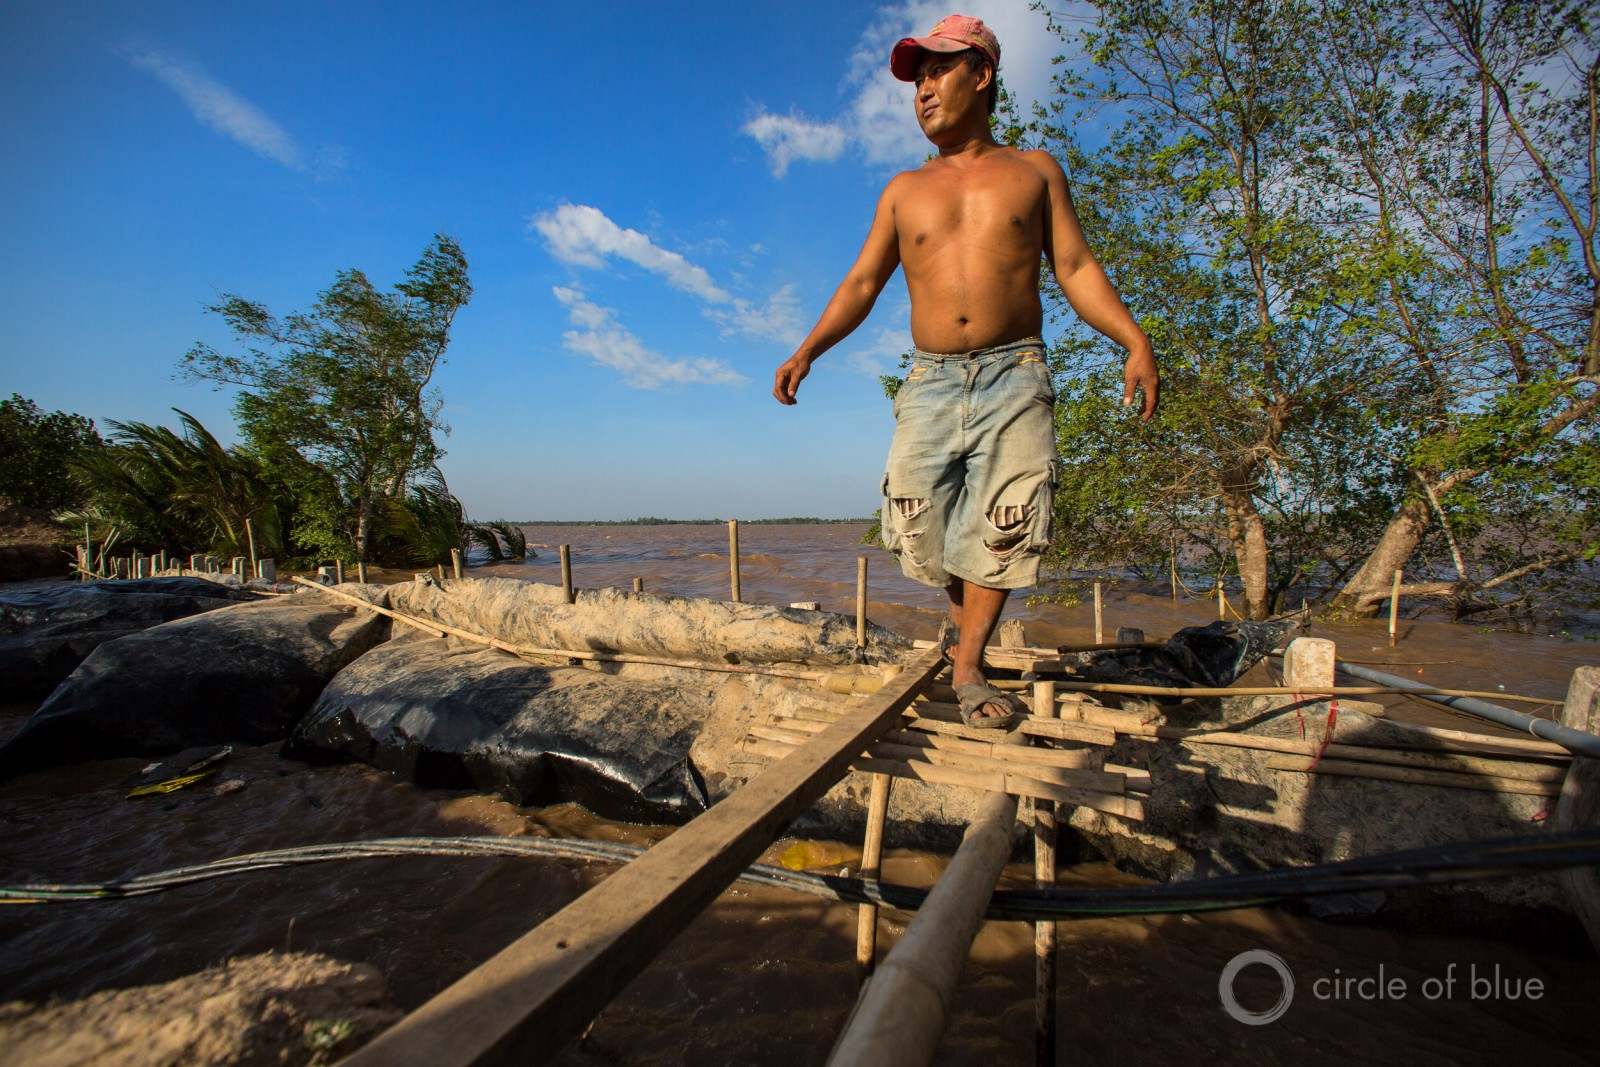 Mekong River floodwaters force Vietnamese farmers to erect barricades to protect their fields. From 1980 to 2014, 41 percent of all the economic losses globally, and 27 percent of the fatalities, were from one source: flooding rivers. Photo © J. Carl Ganter / Circle of Blue